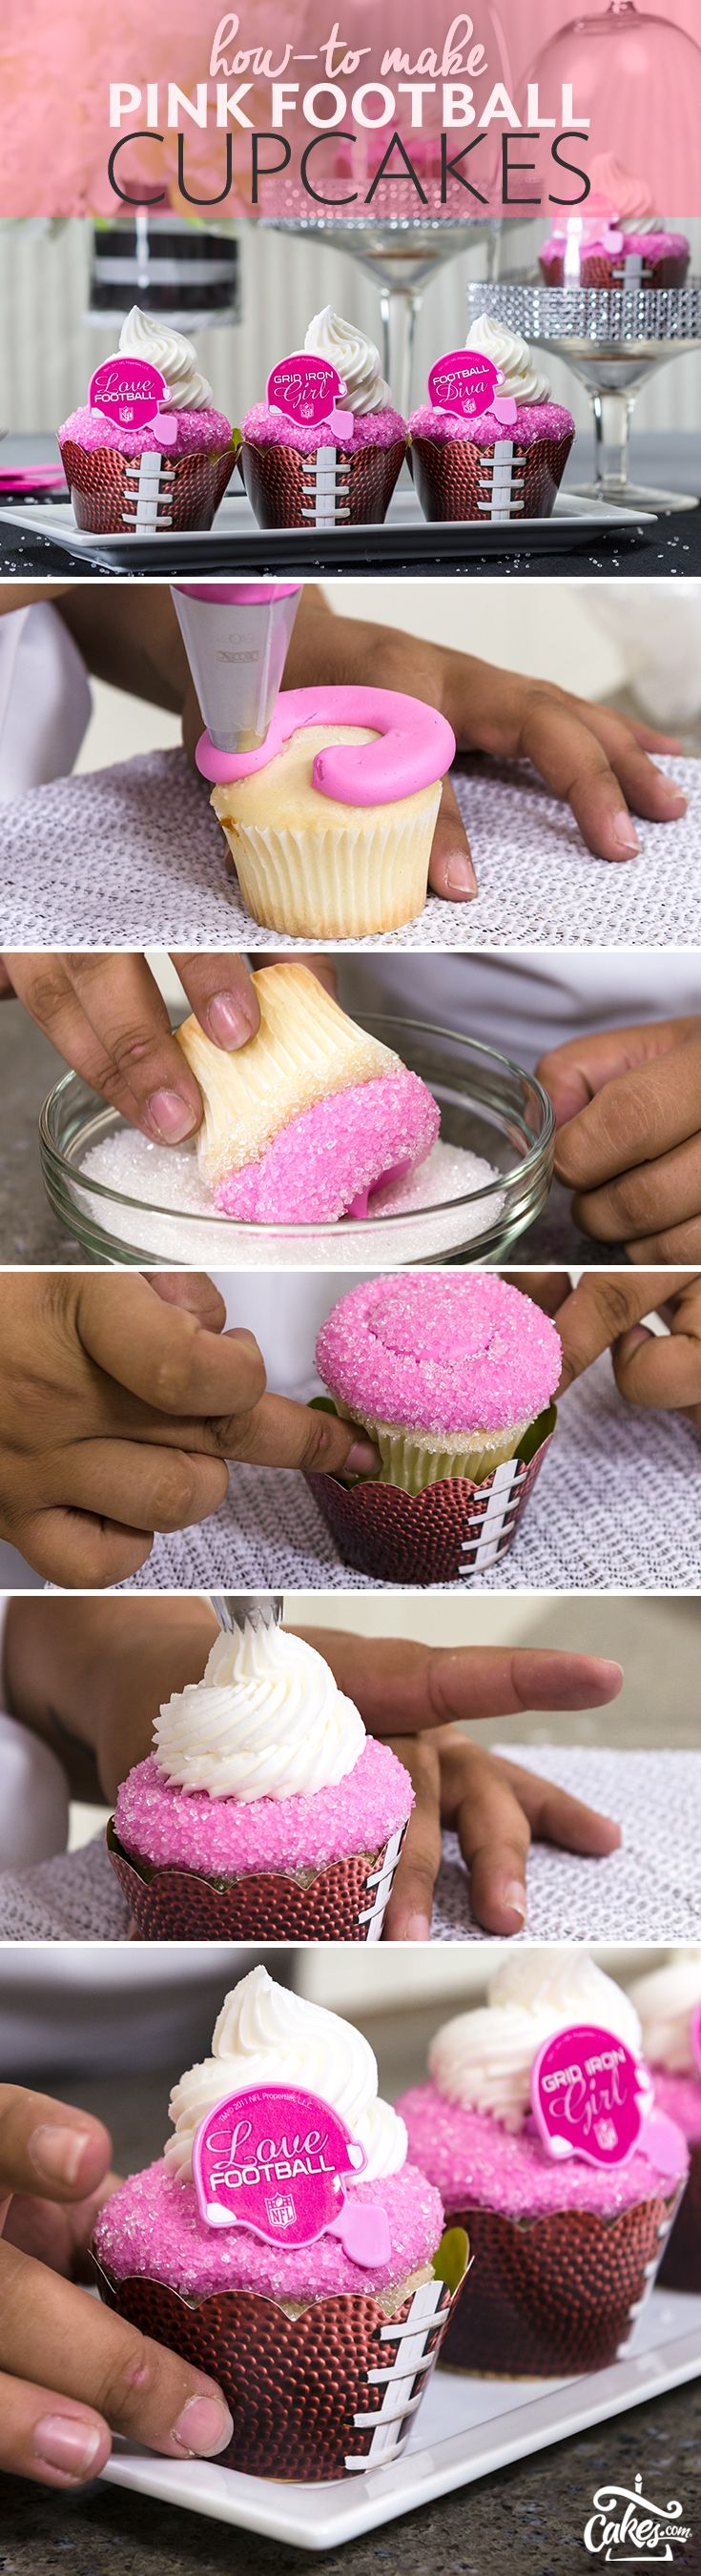 Calling all Football Divas Add a feminine touch to your football-themed party with pink NFL football cupcakes. They're simple to make and turn a fantasy football draft or tailgate into a classy affair.